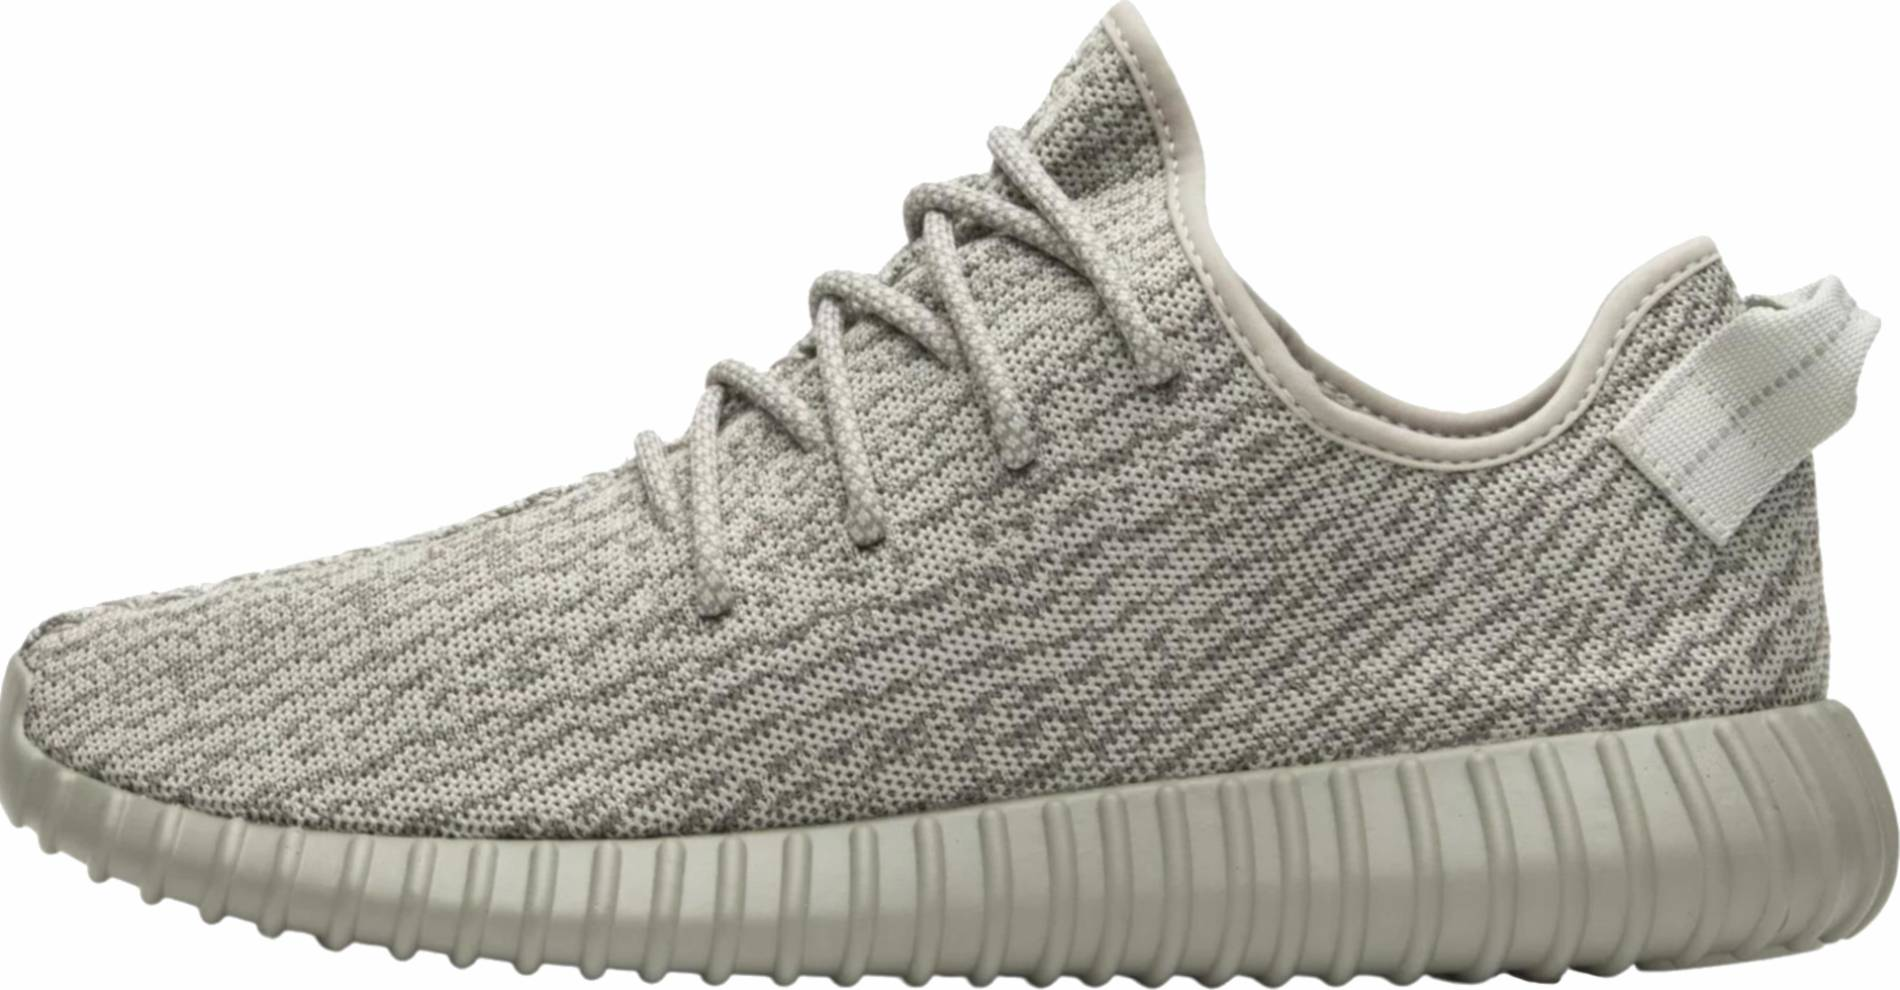 10 Reasons to/NOT to Buy Adidas Yeezy 350 Boost (Sep 2021) | RunRepeat